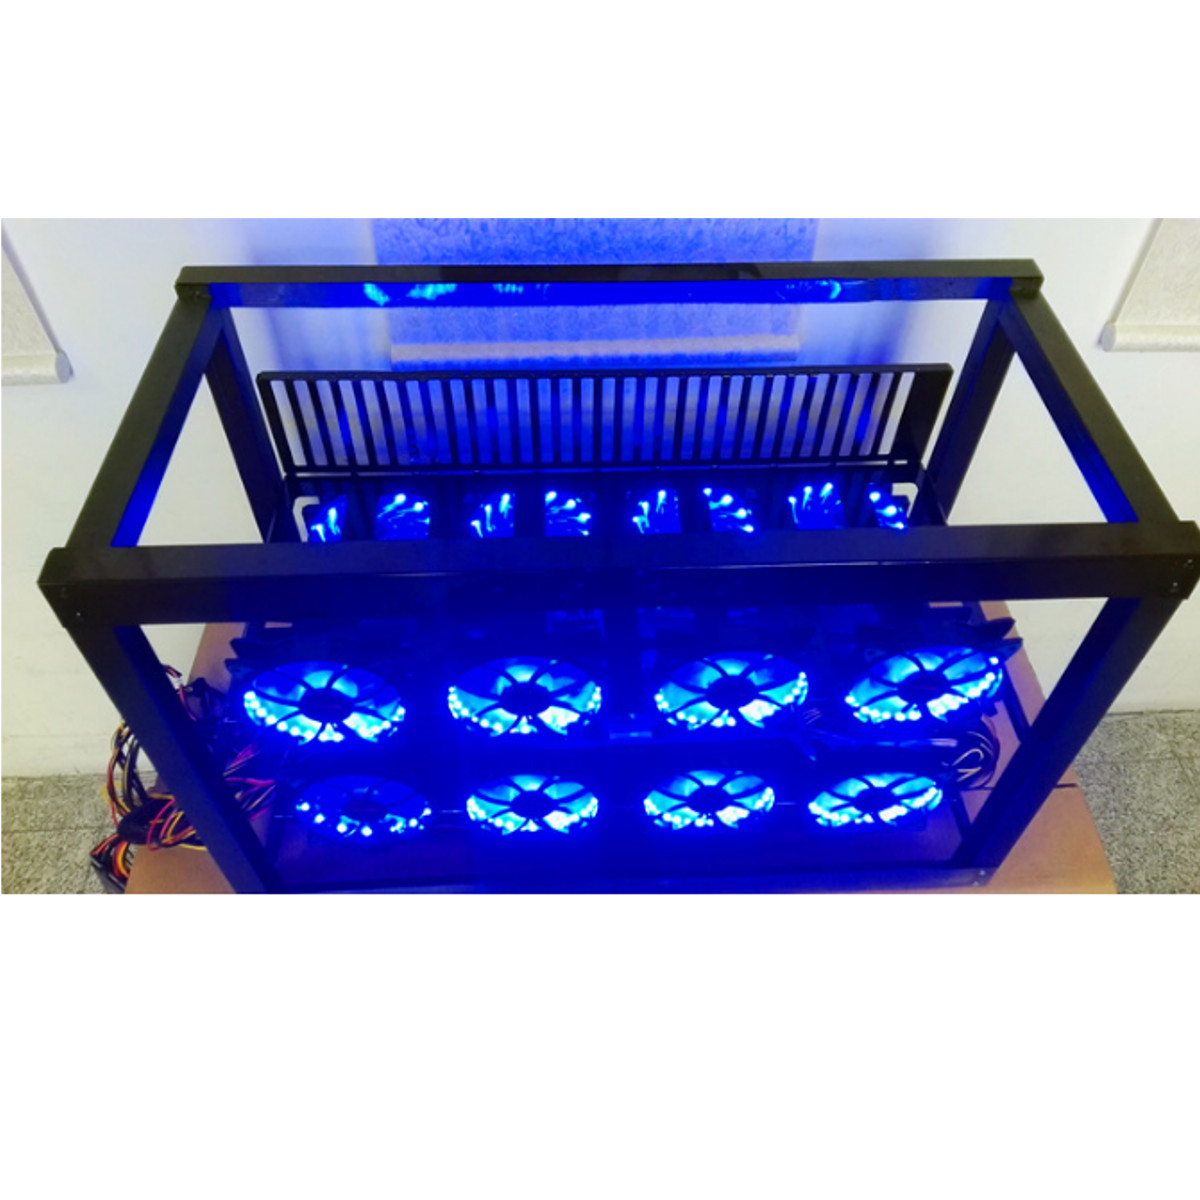 Aluminum Crypto Open Air Mining Miner Frame Rig Case For 8 GPU Ethereum 12 Fan